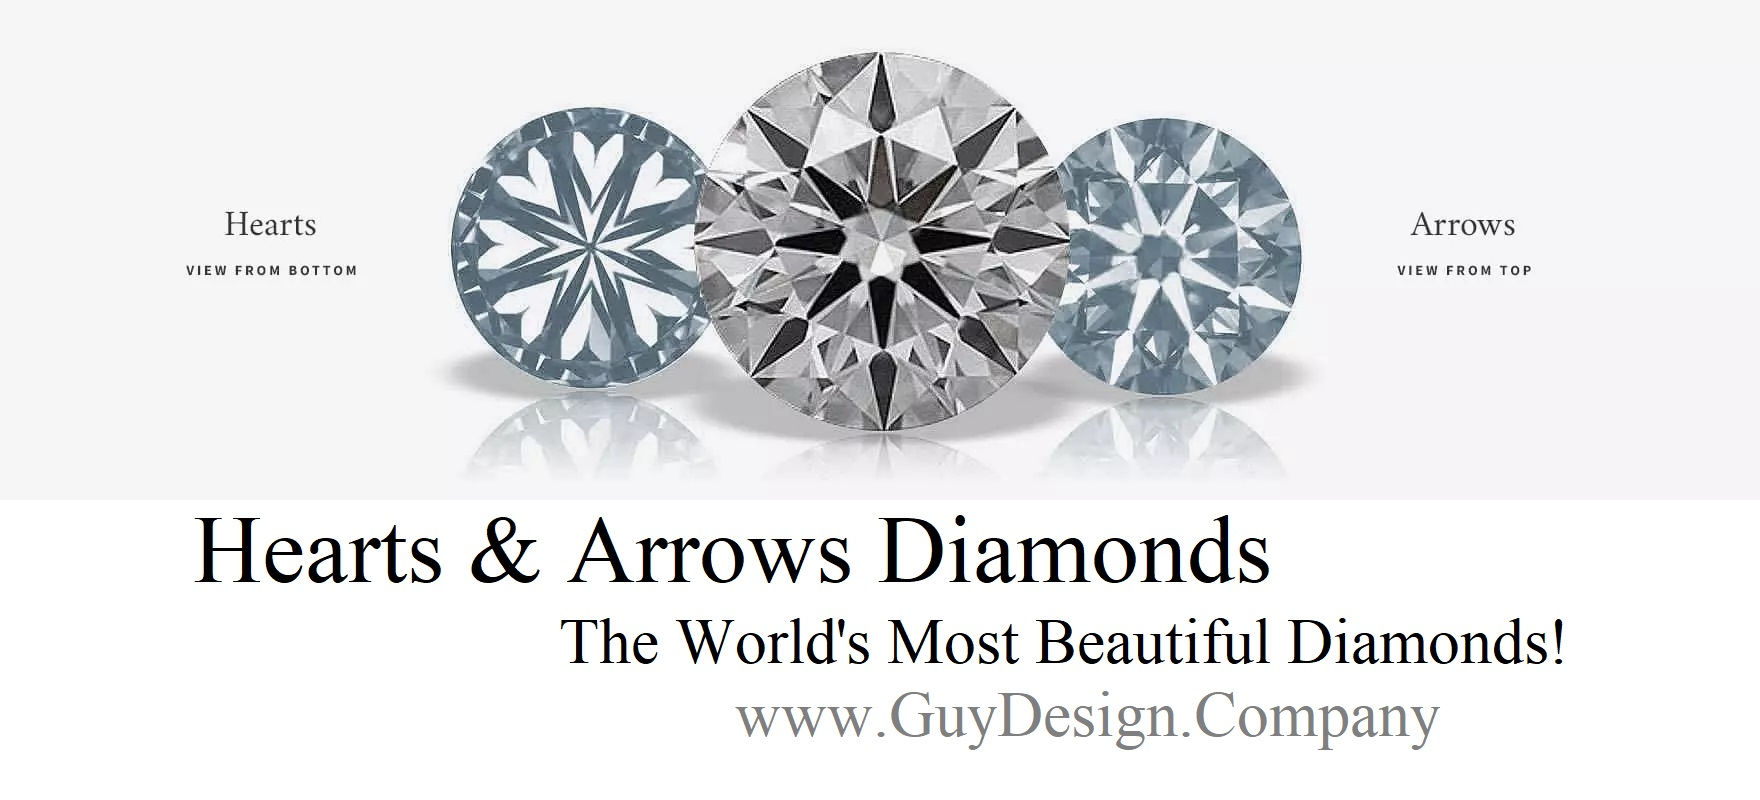 1-hearts-and-arrows-diamonds-guydesign-banner-1760-x-800.jpg